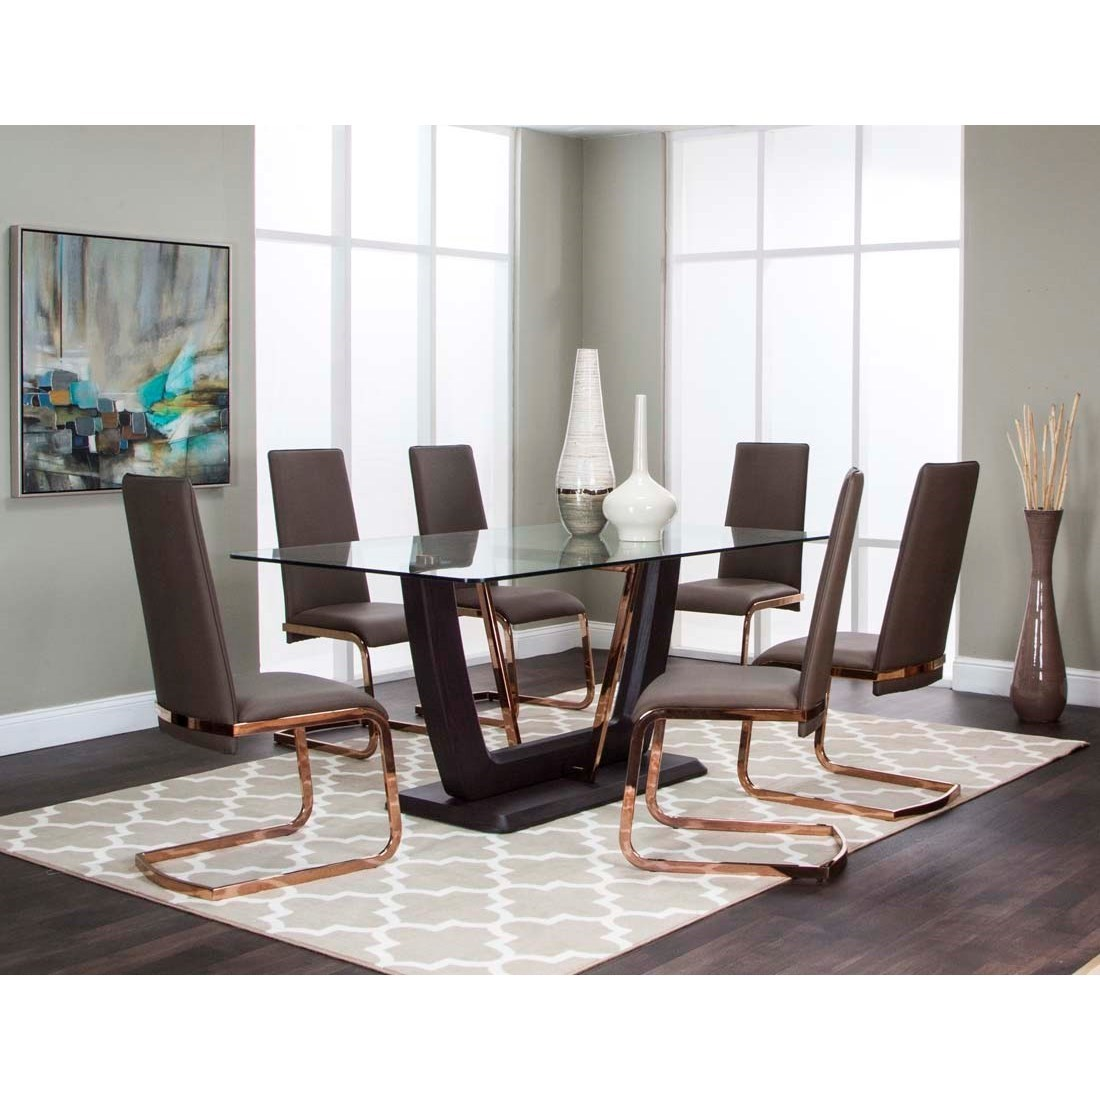 Cramco Inc Bentley 7 Piece Dining Set Value City Furniture Casual Dining Room Group